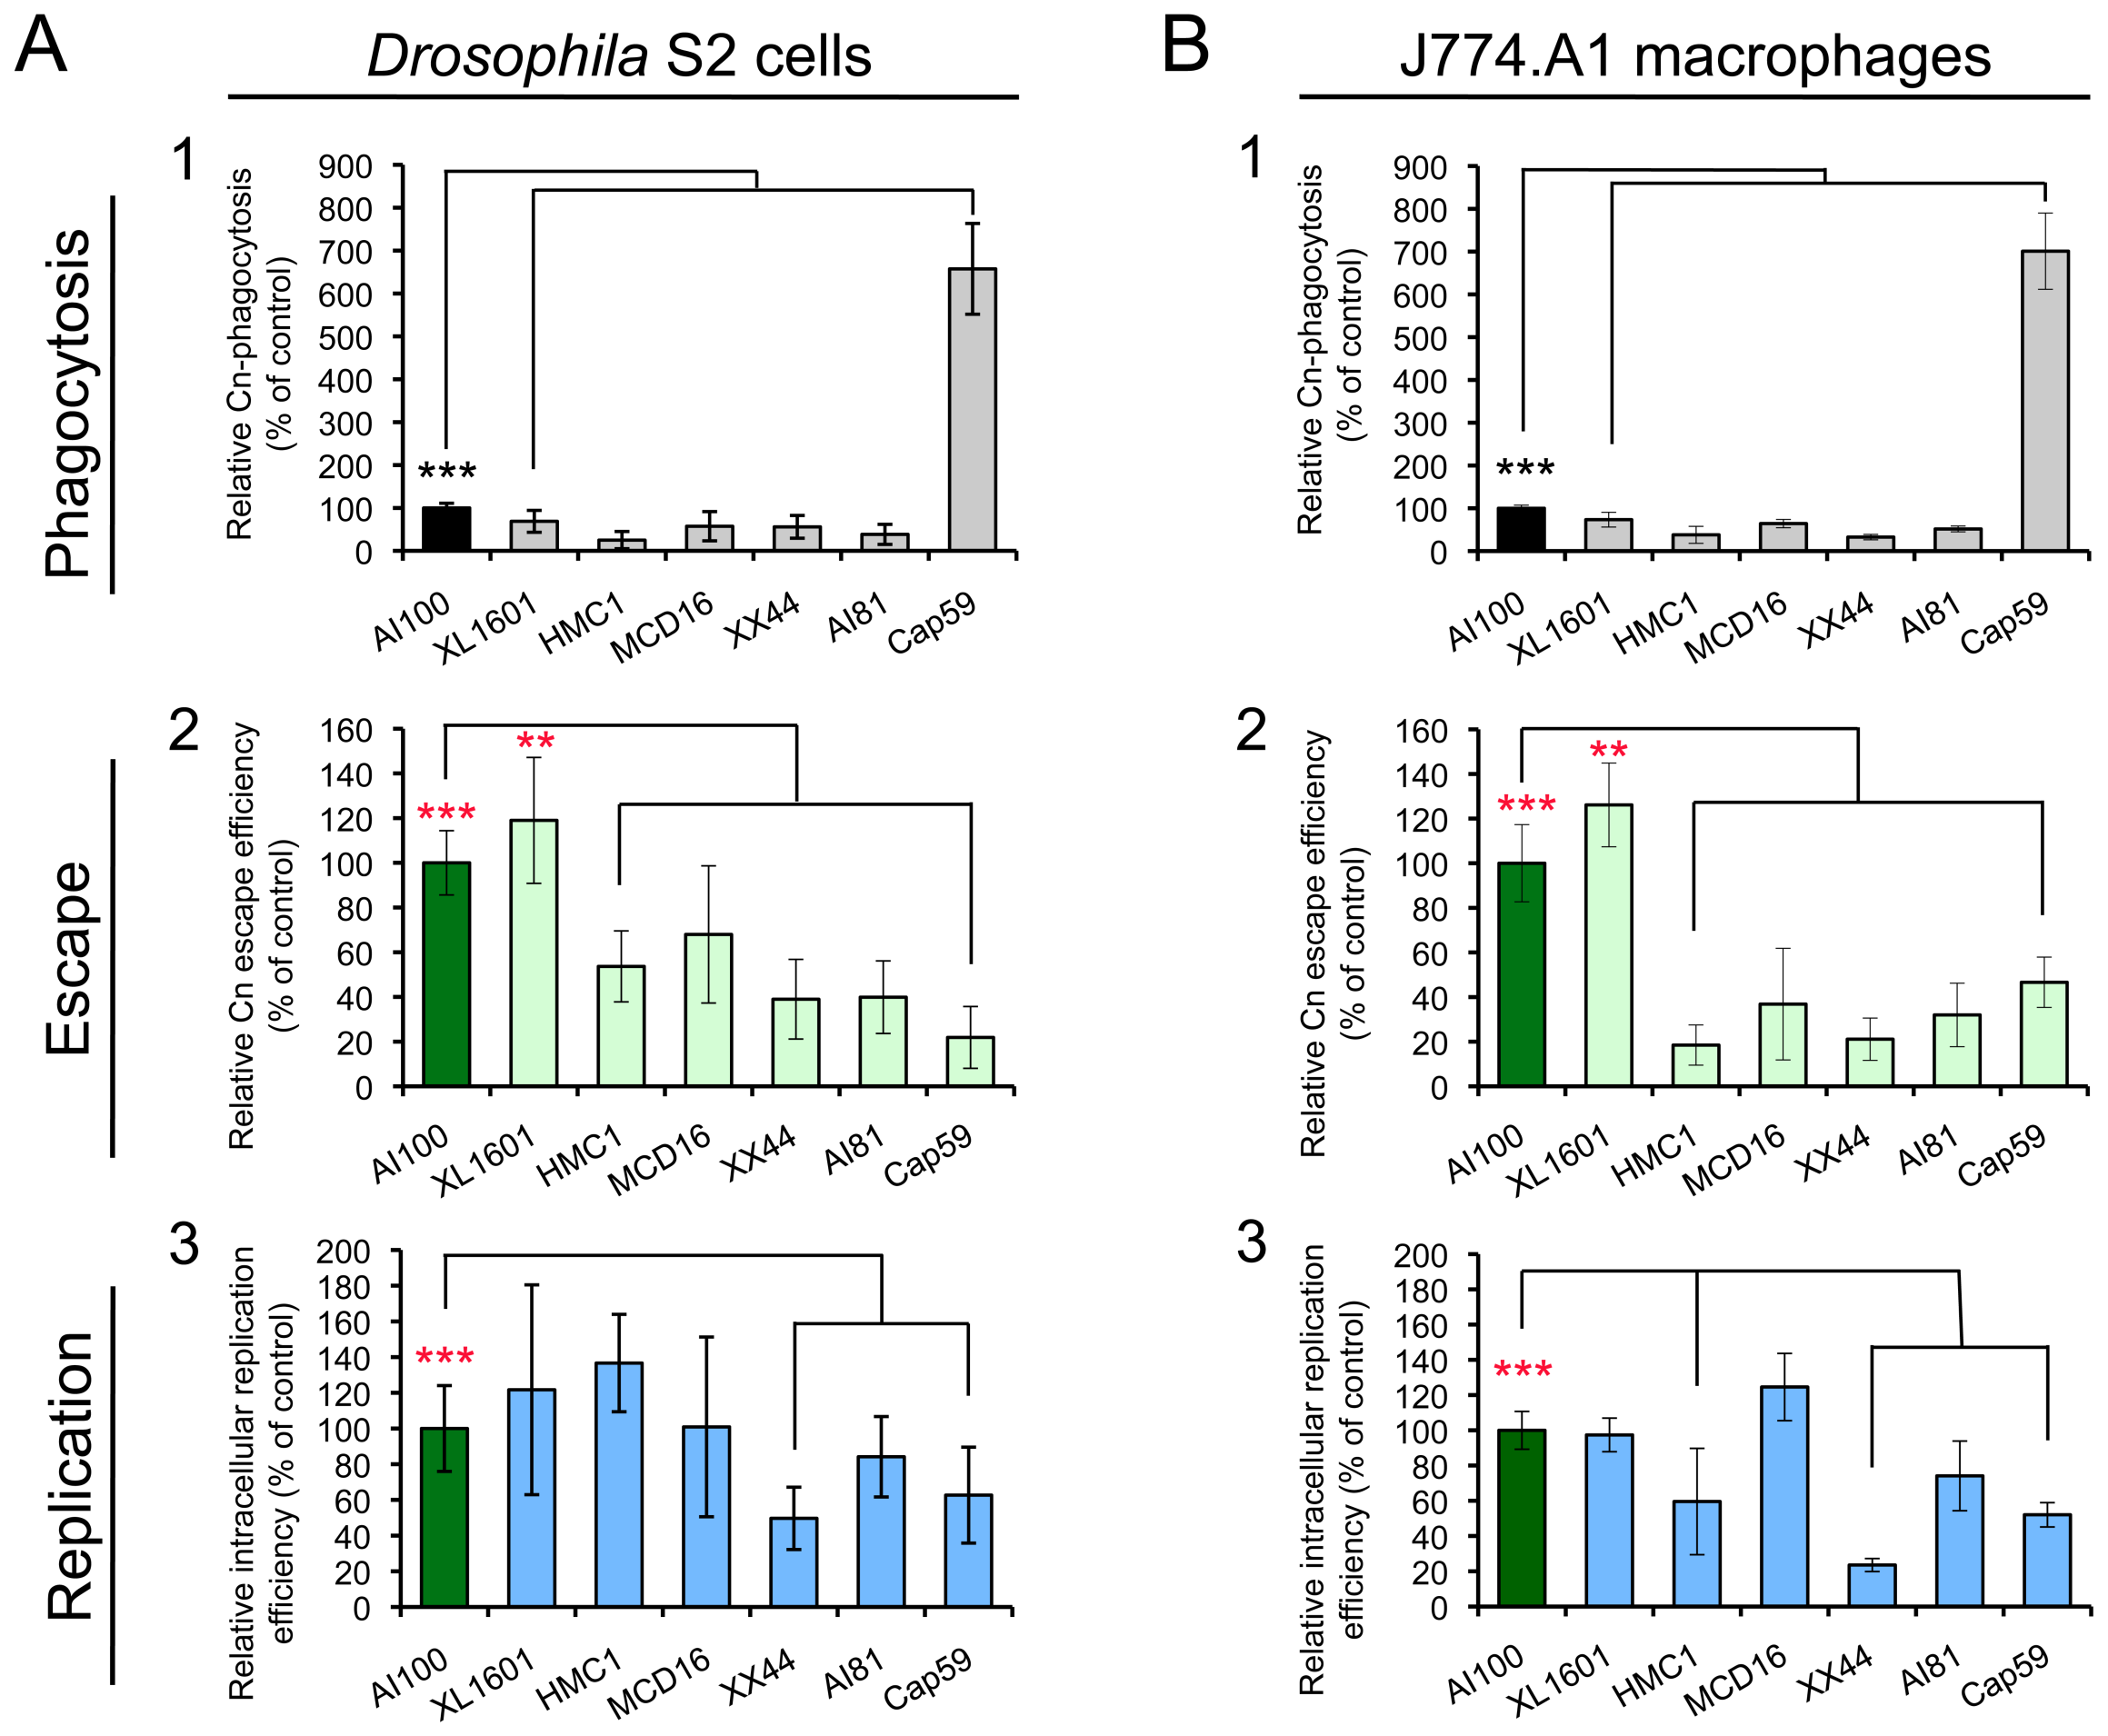 <i>Cryptococcus neoformans</i> mutants behave similarly in <i>Drosophila</i> S2 cells.